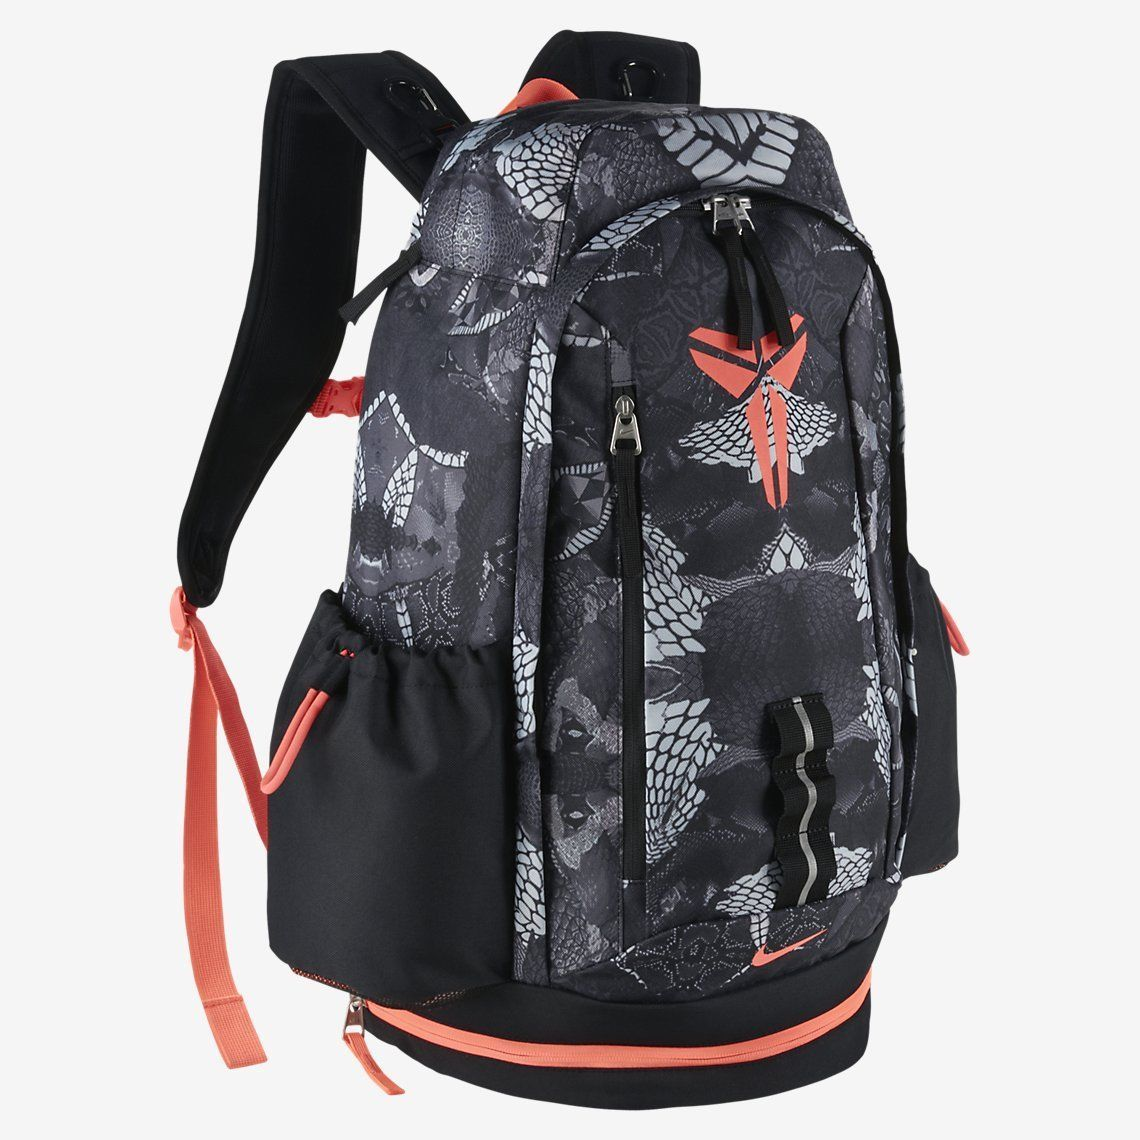 kobe bryant backpack amazon cheap   OFF35% The Largest Catalog Discounts 2033b2426c152